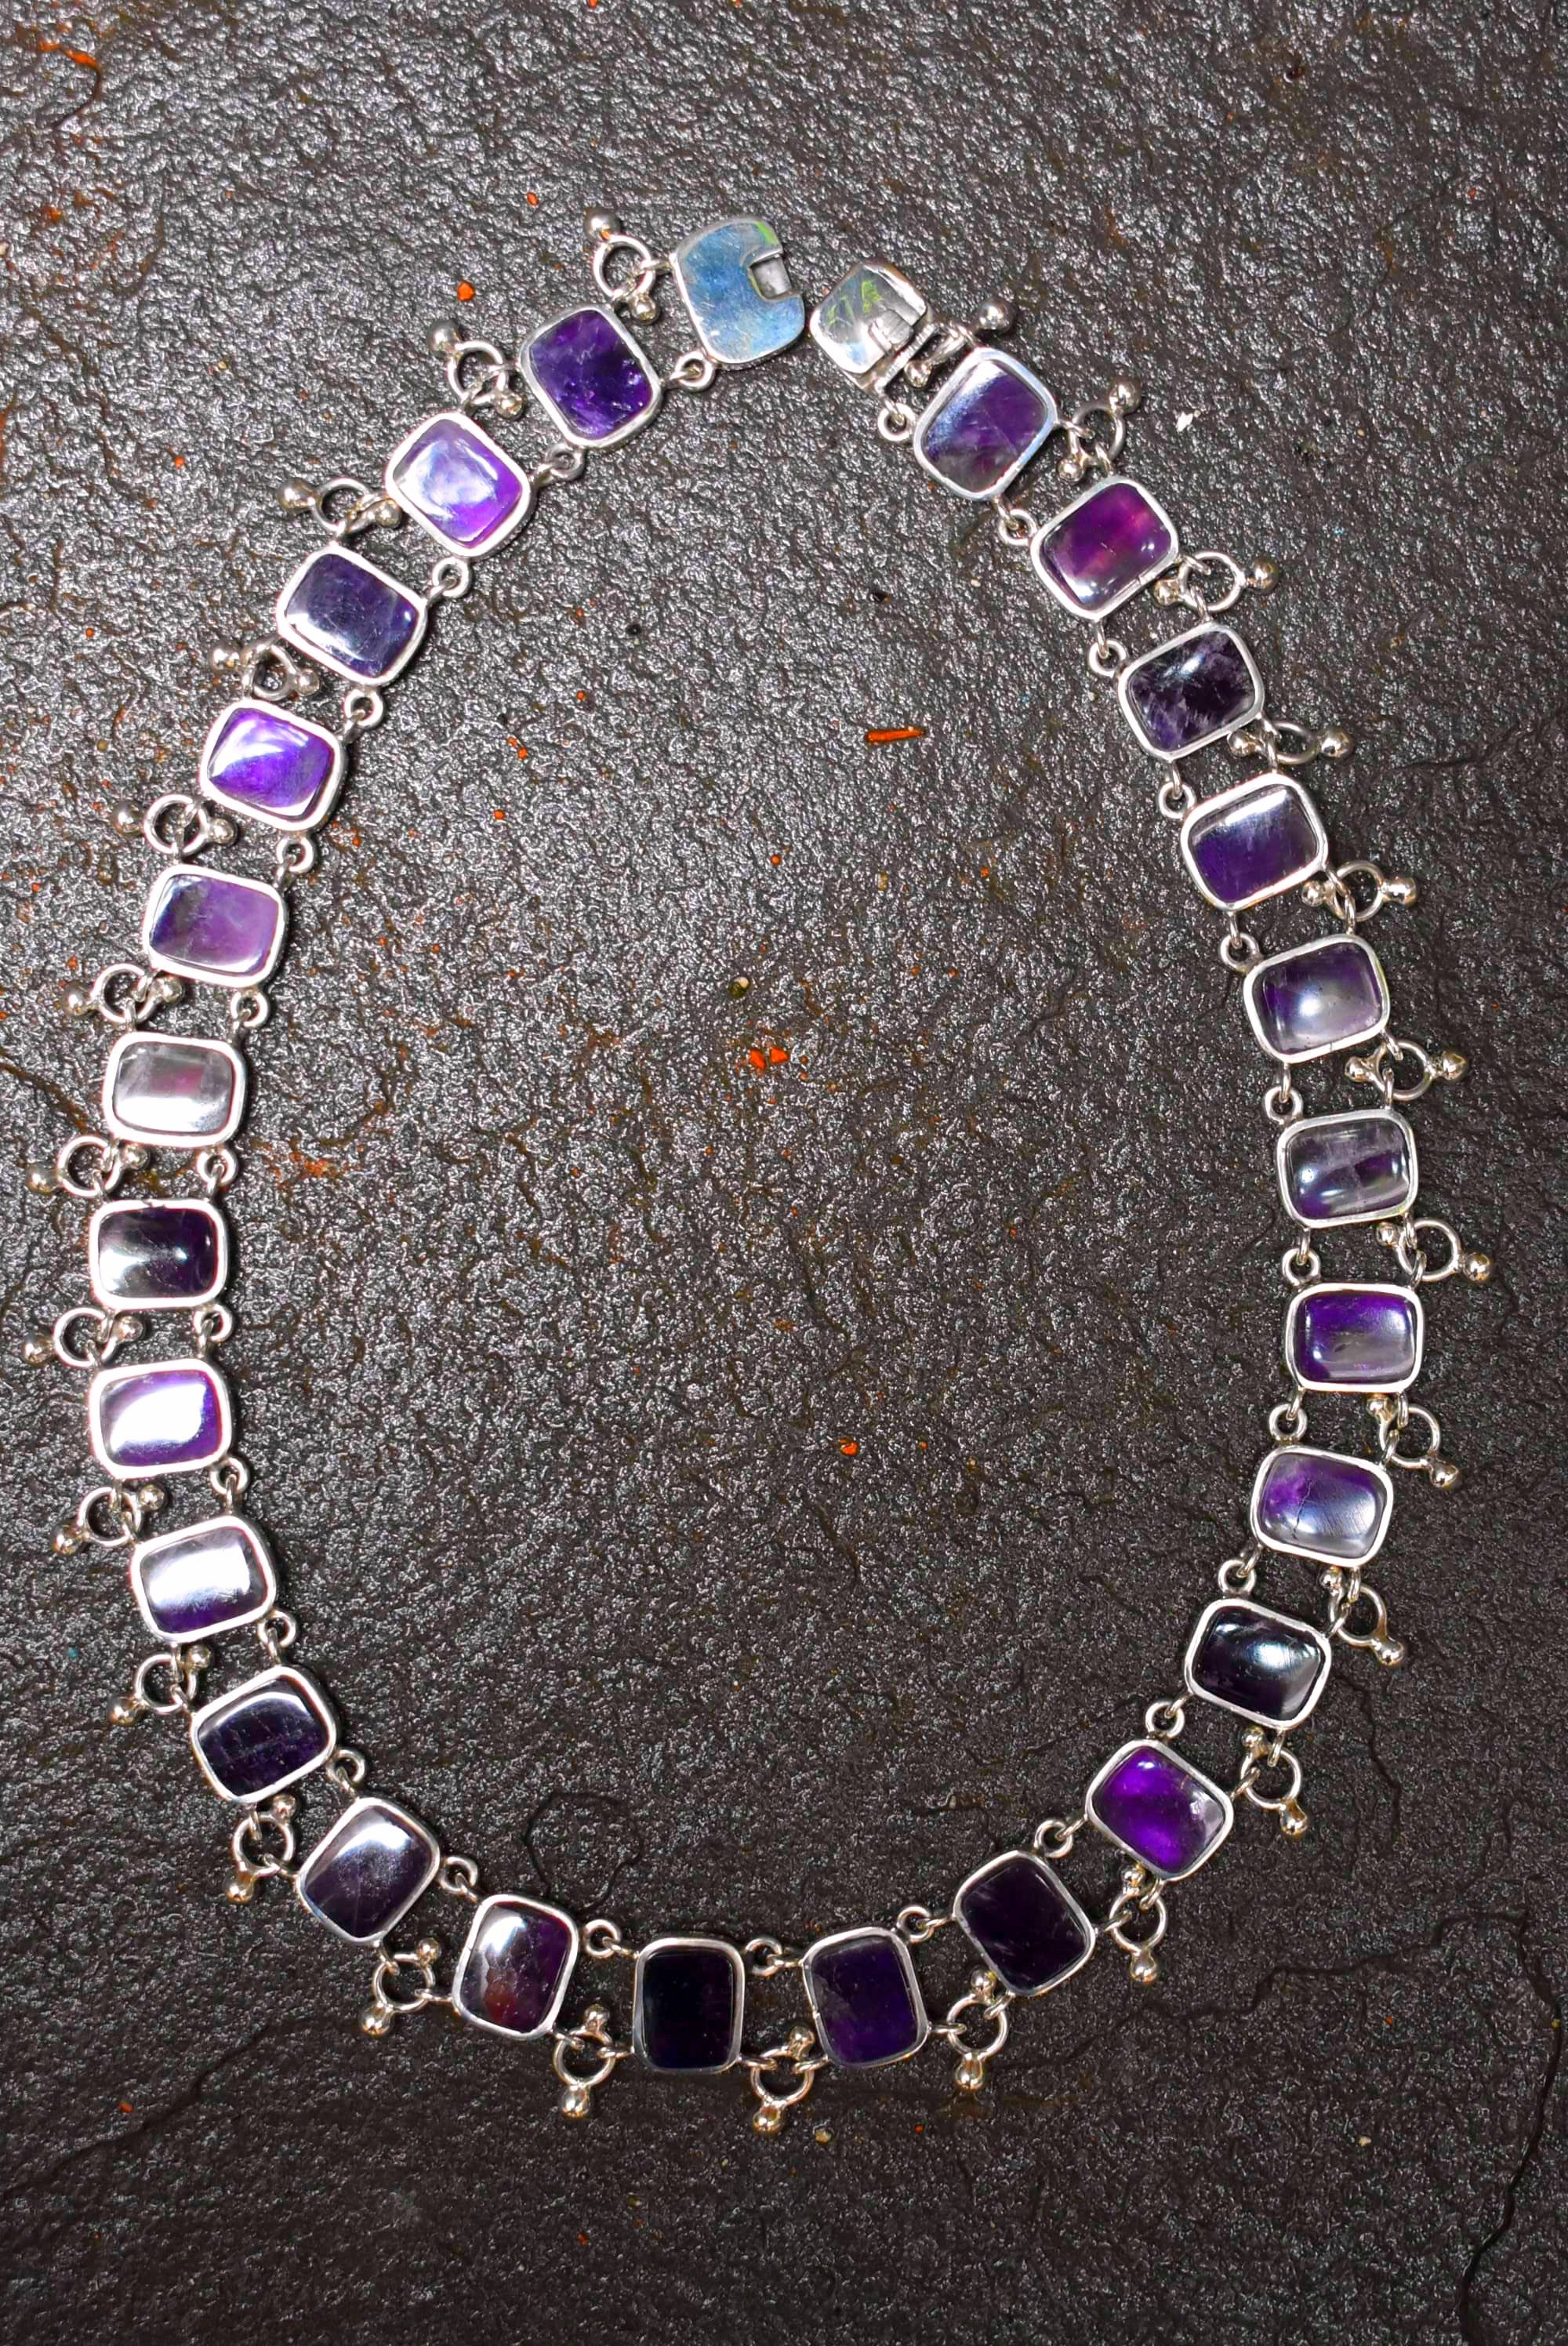 Spratling Silver and Amethyst Necklace